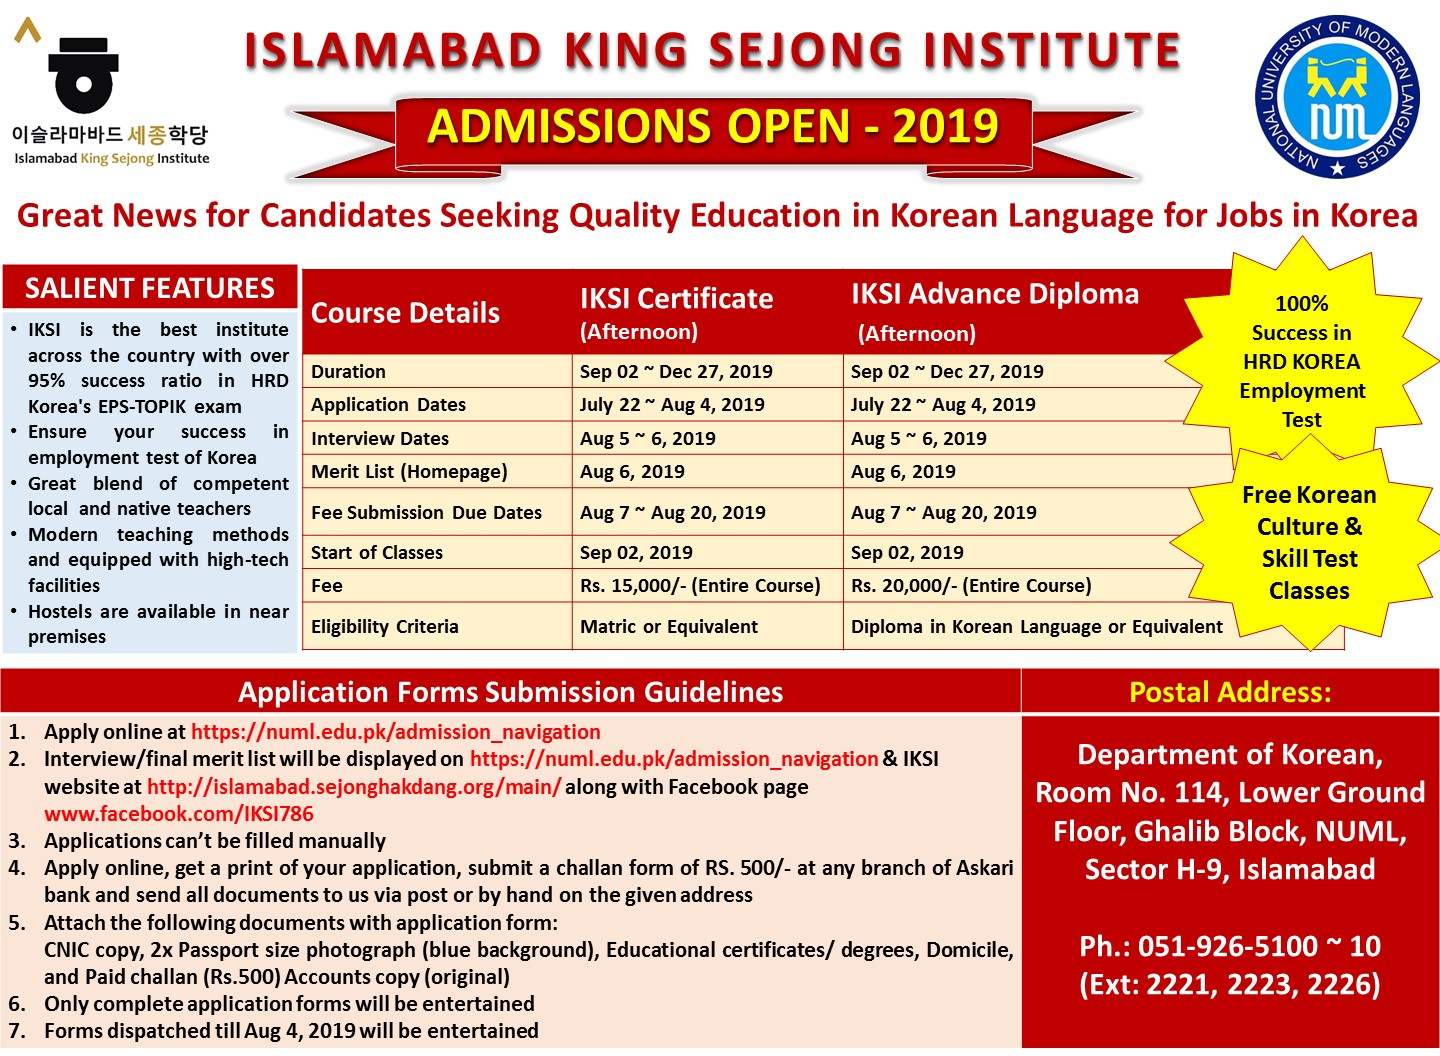 ISLAMABAD KING SEJONG INSTITUTE ADMISSION OPEN